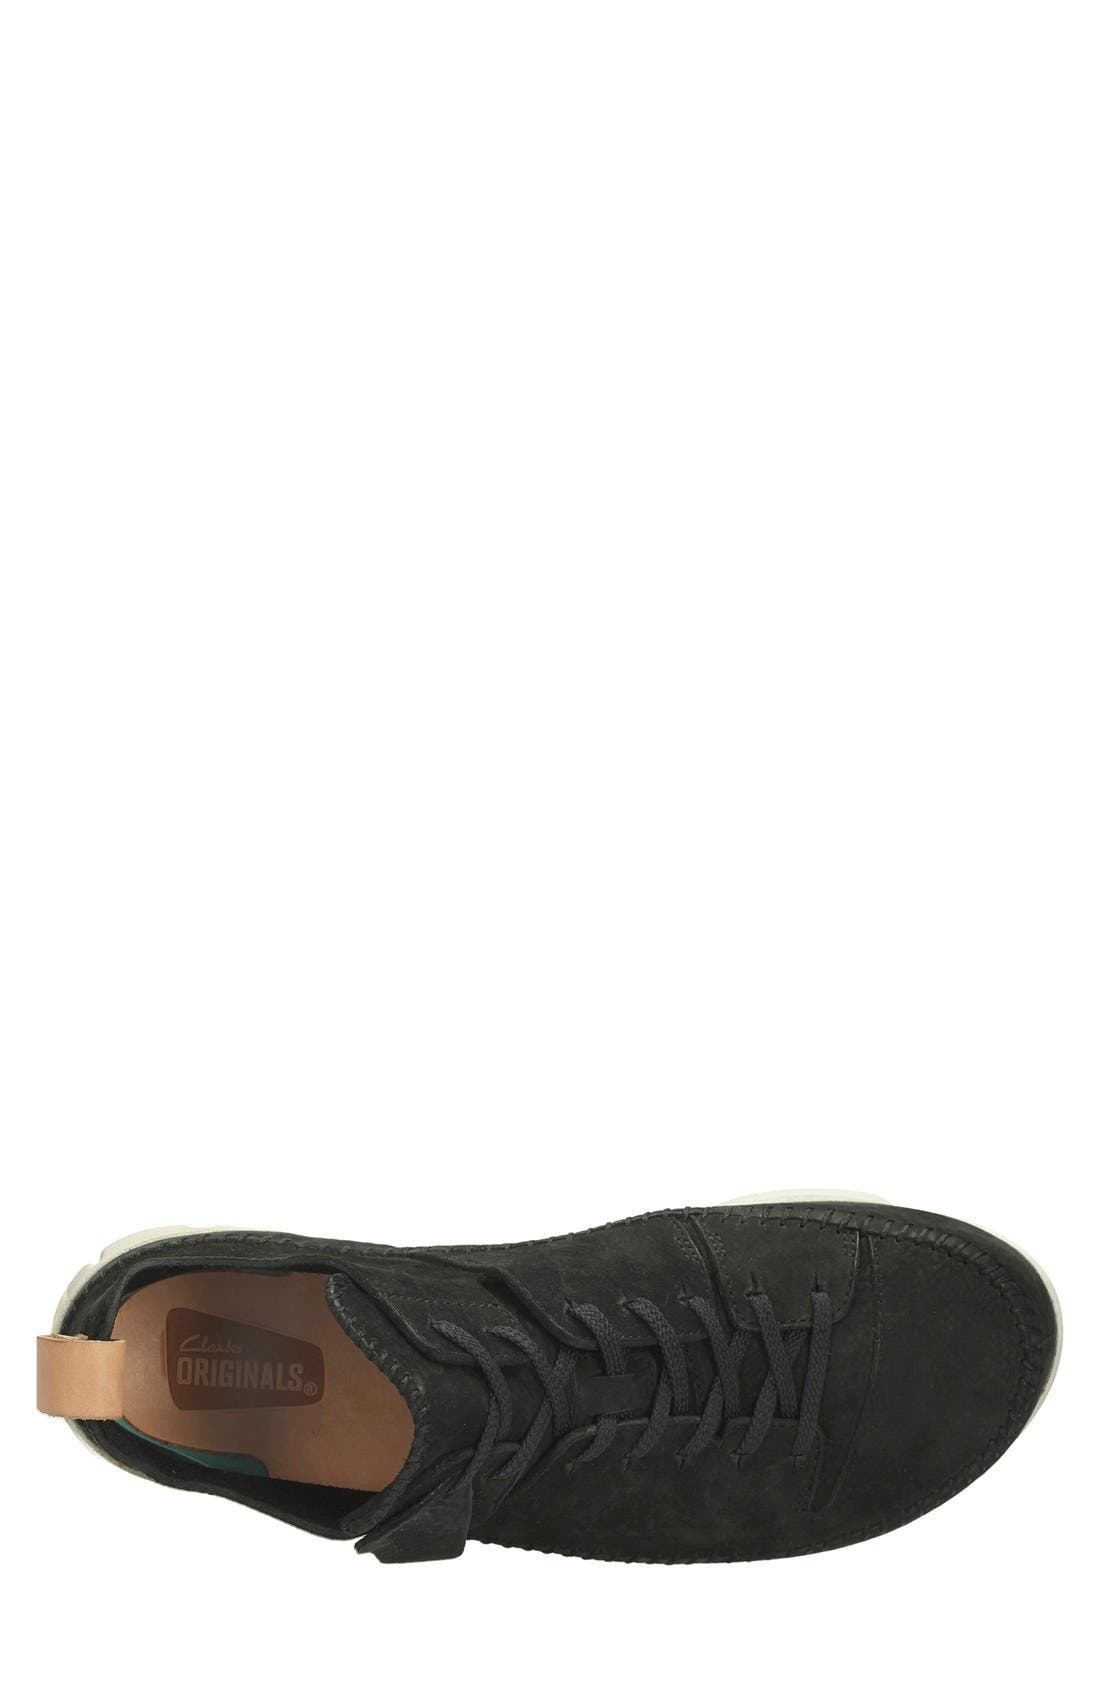 Clarks<sup>®</sup> 'Trigenic Flex' Leather Sneaker,                             Alternate thumbnail 3, color,                             Black